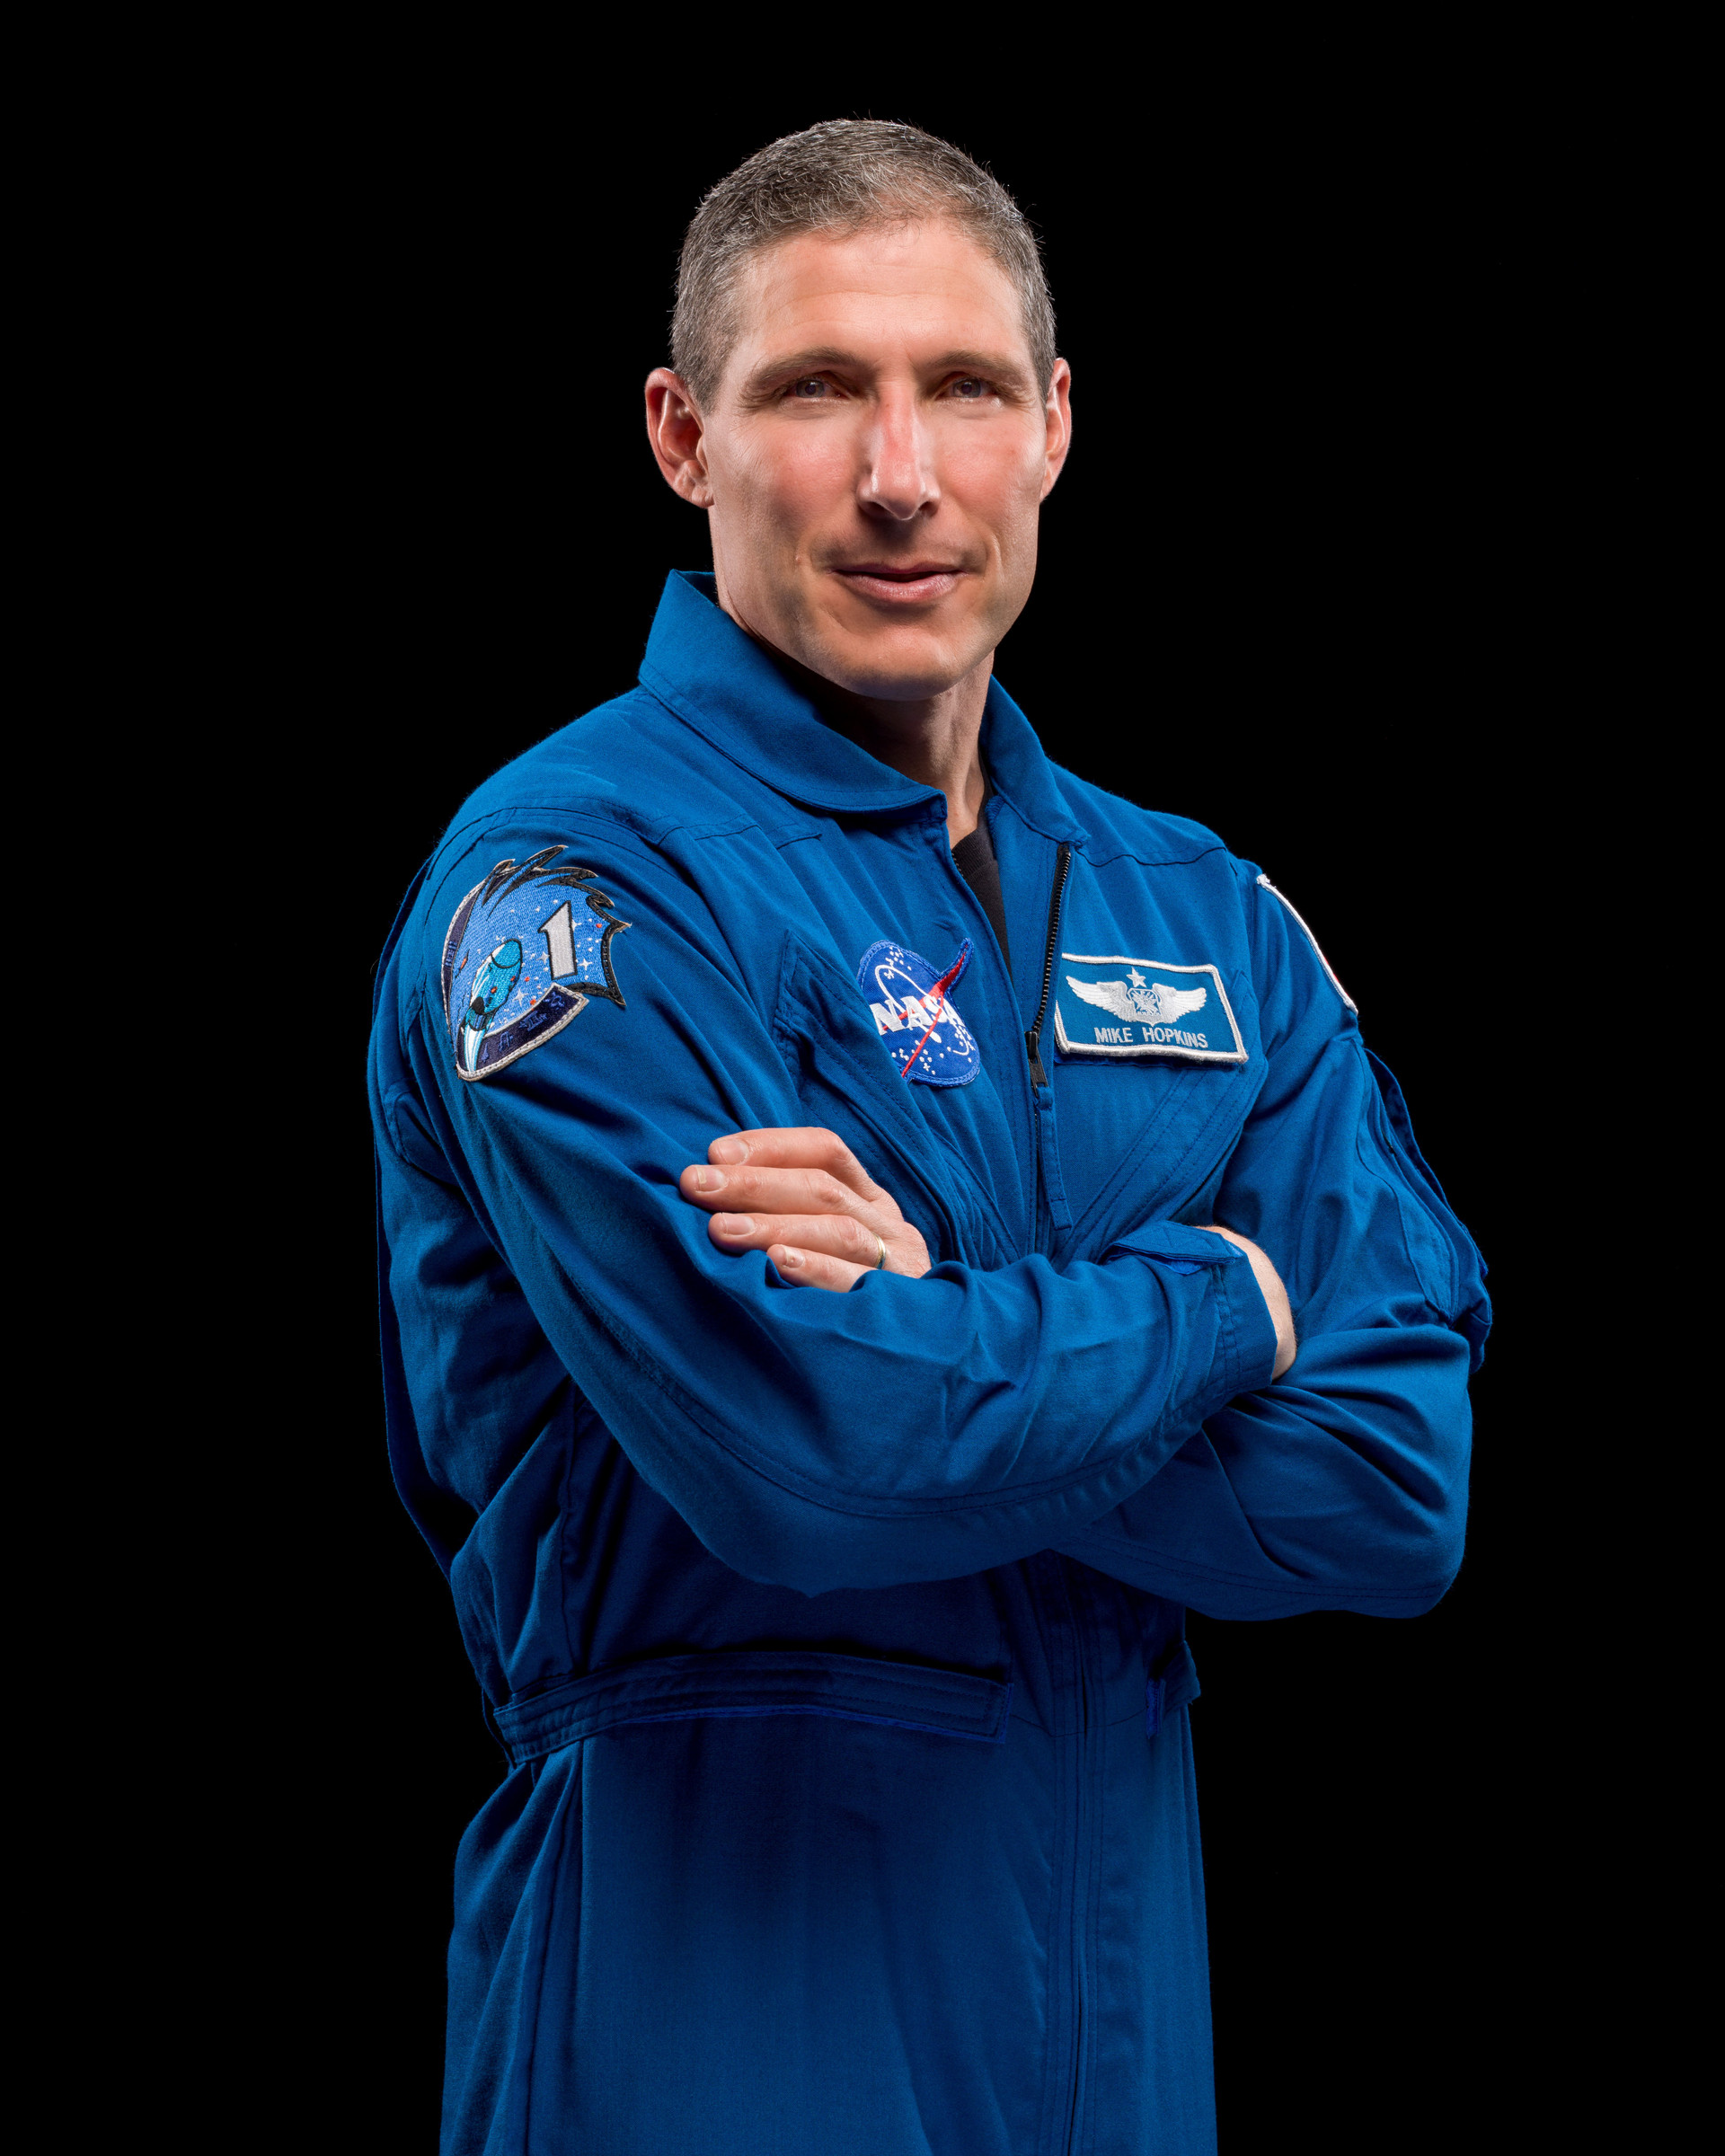 NASA astronaut and SpaceX Crew-1 Commander Mike Hopkins will also be a Flight Engineer for Expedition 64.